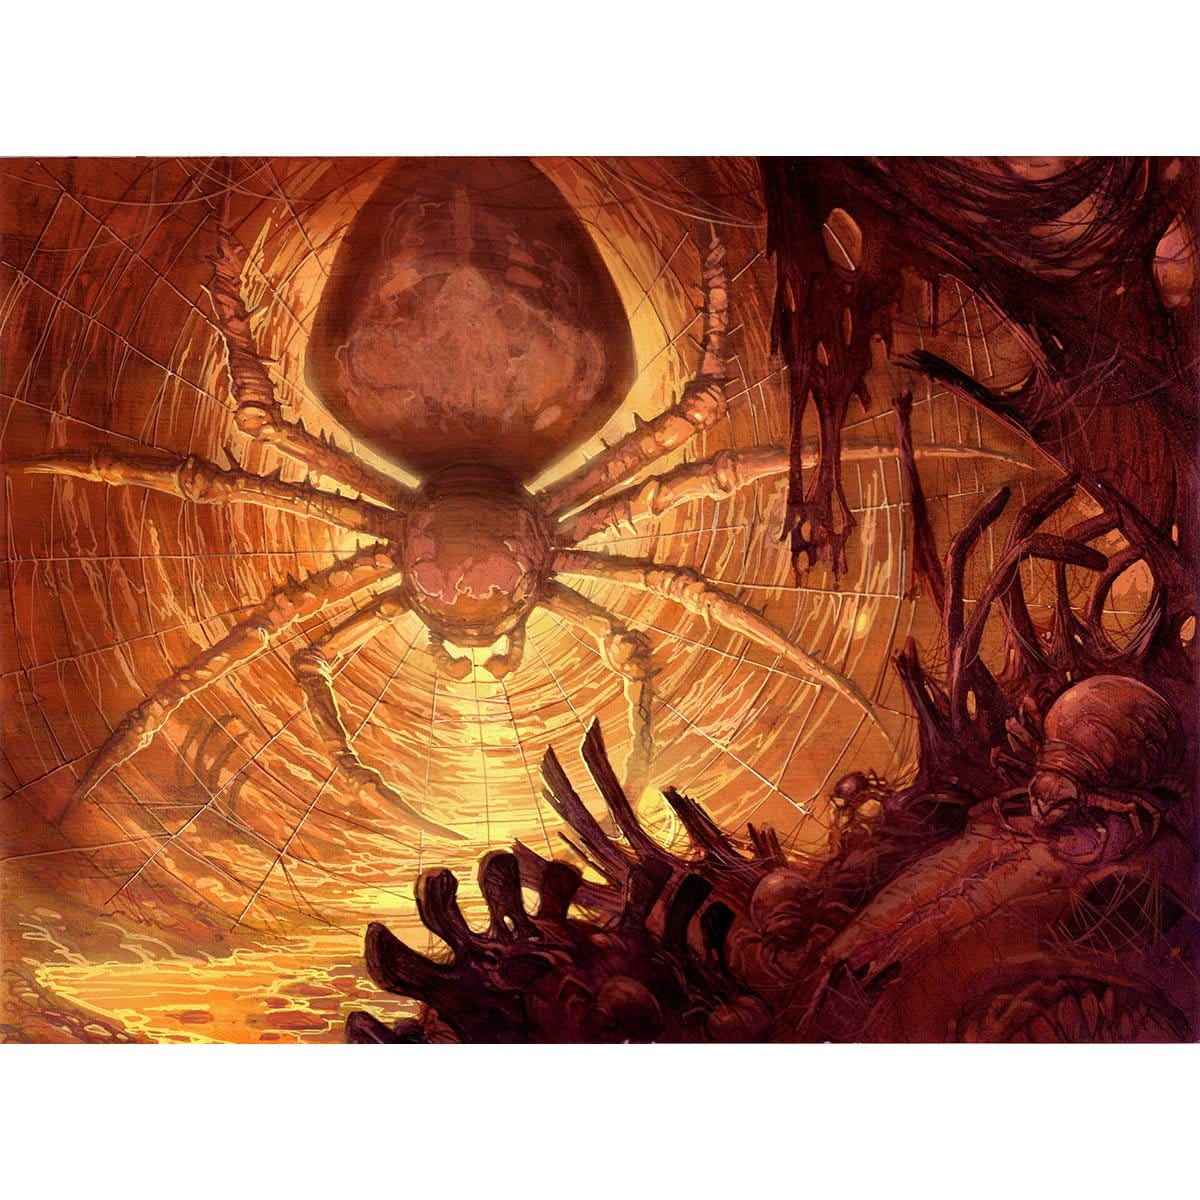 Dragonlair Spider Print - Print - Original Magic Art - Accessories for Magic the Gathering and other card games